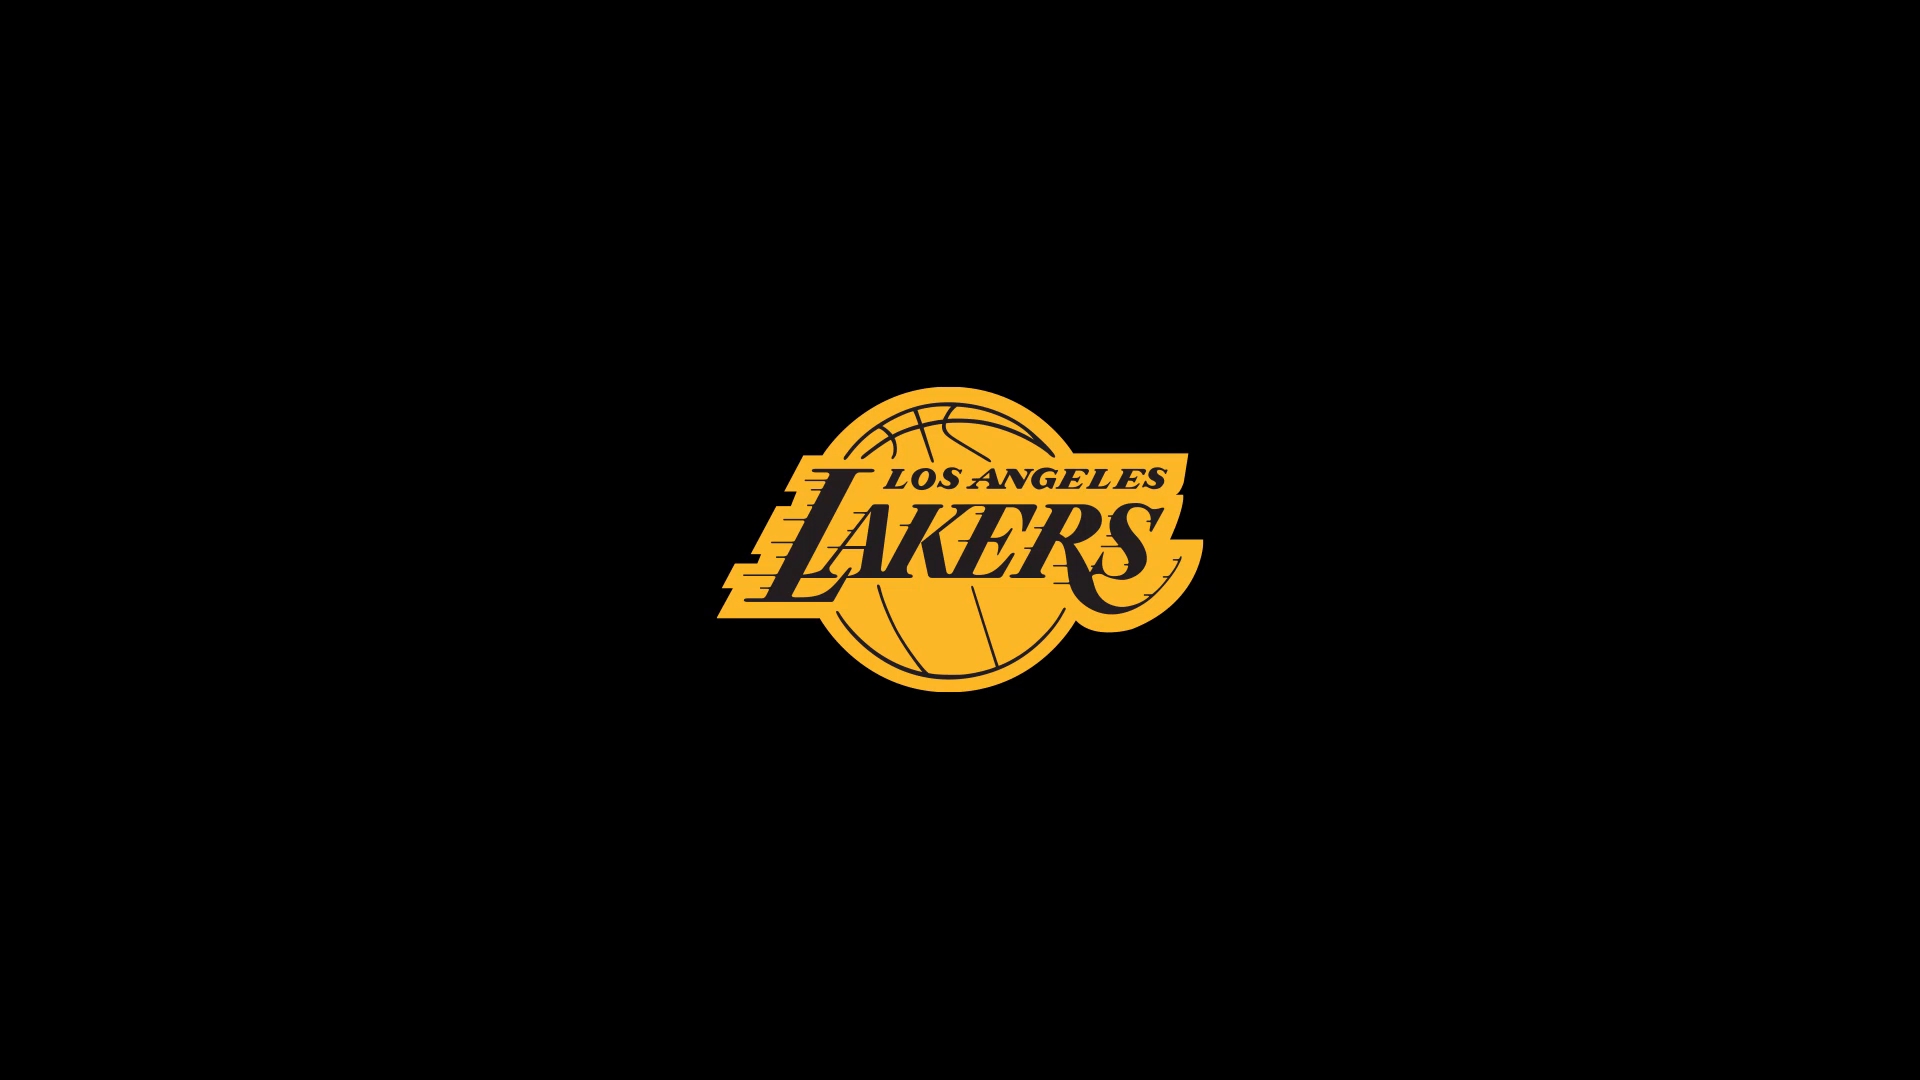 It's Opening Night, the Lakers season is here!